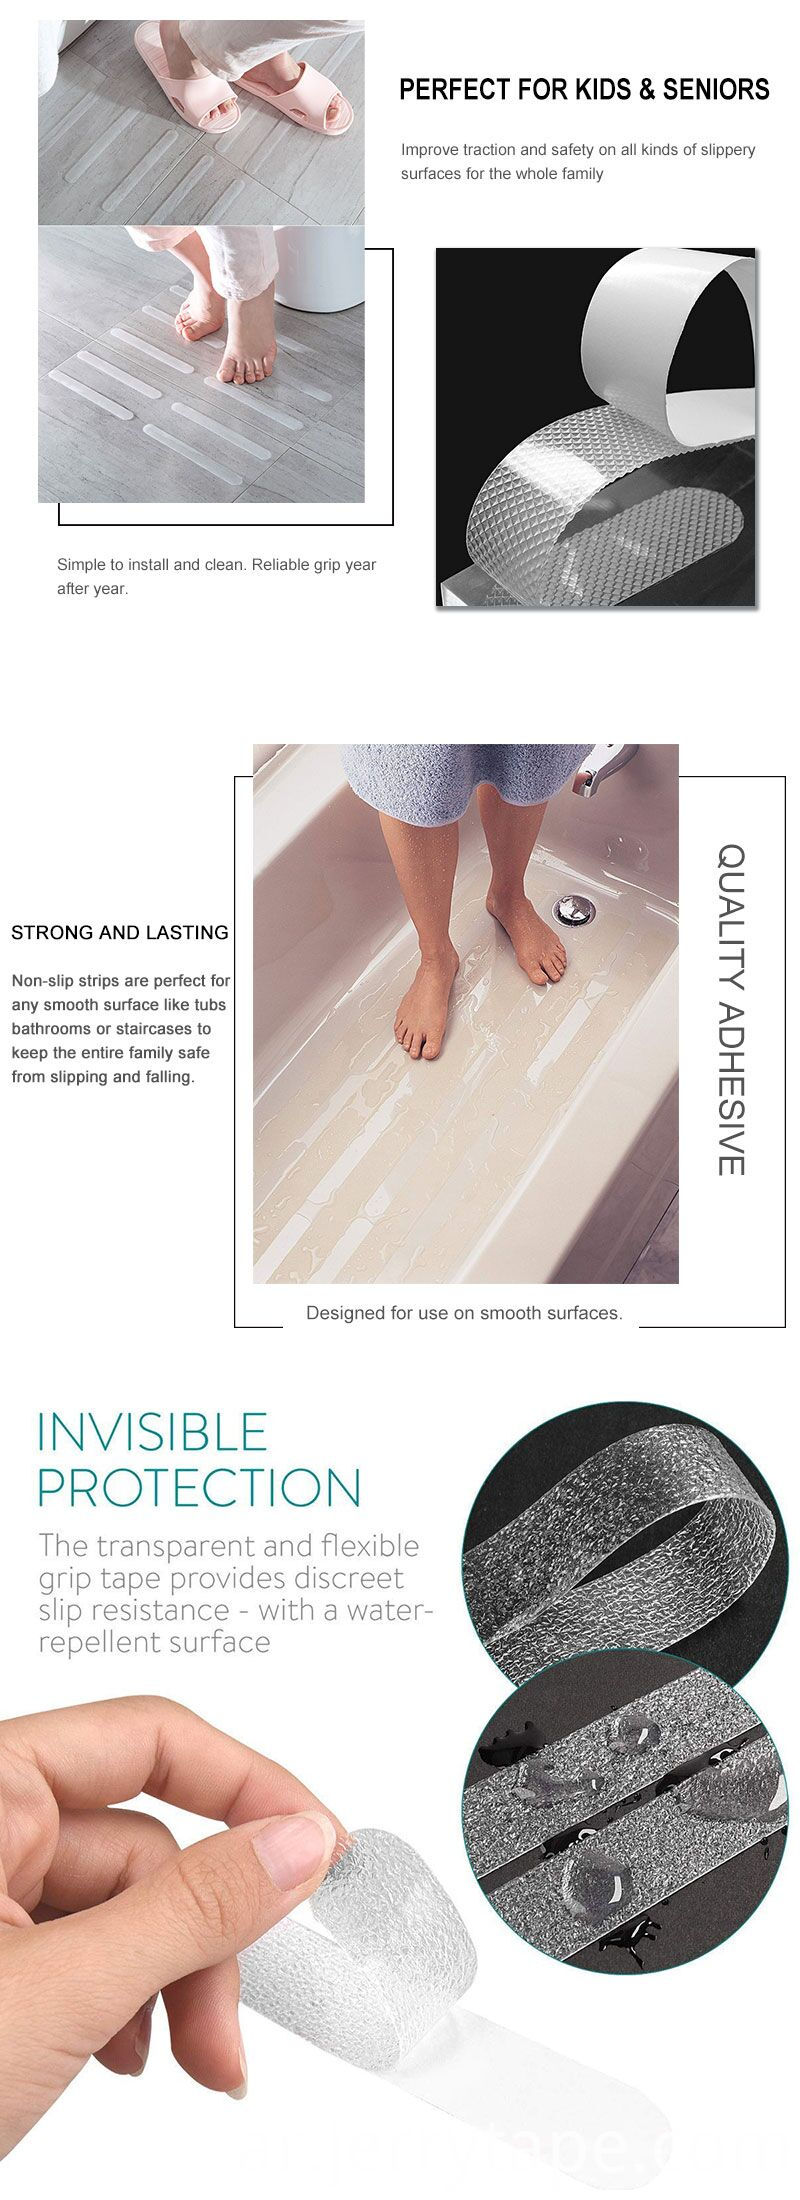 Non Abrasive Barefoot Anti Slip Tape For Showers